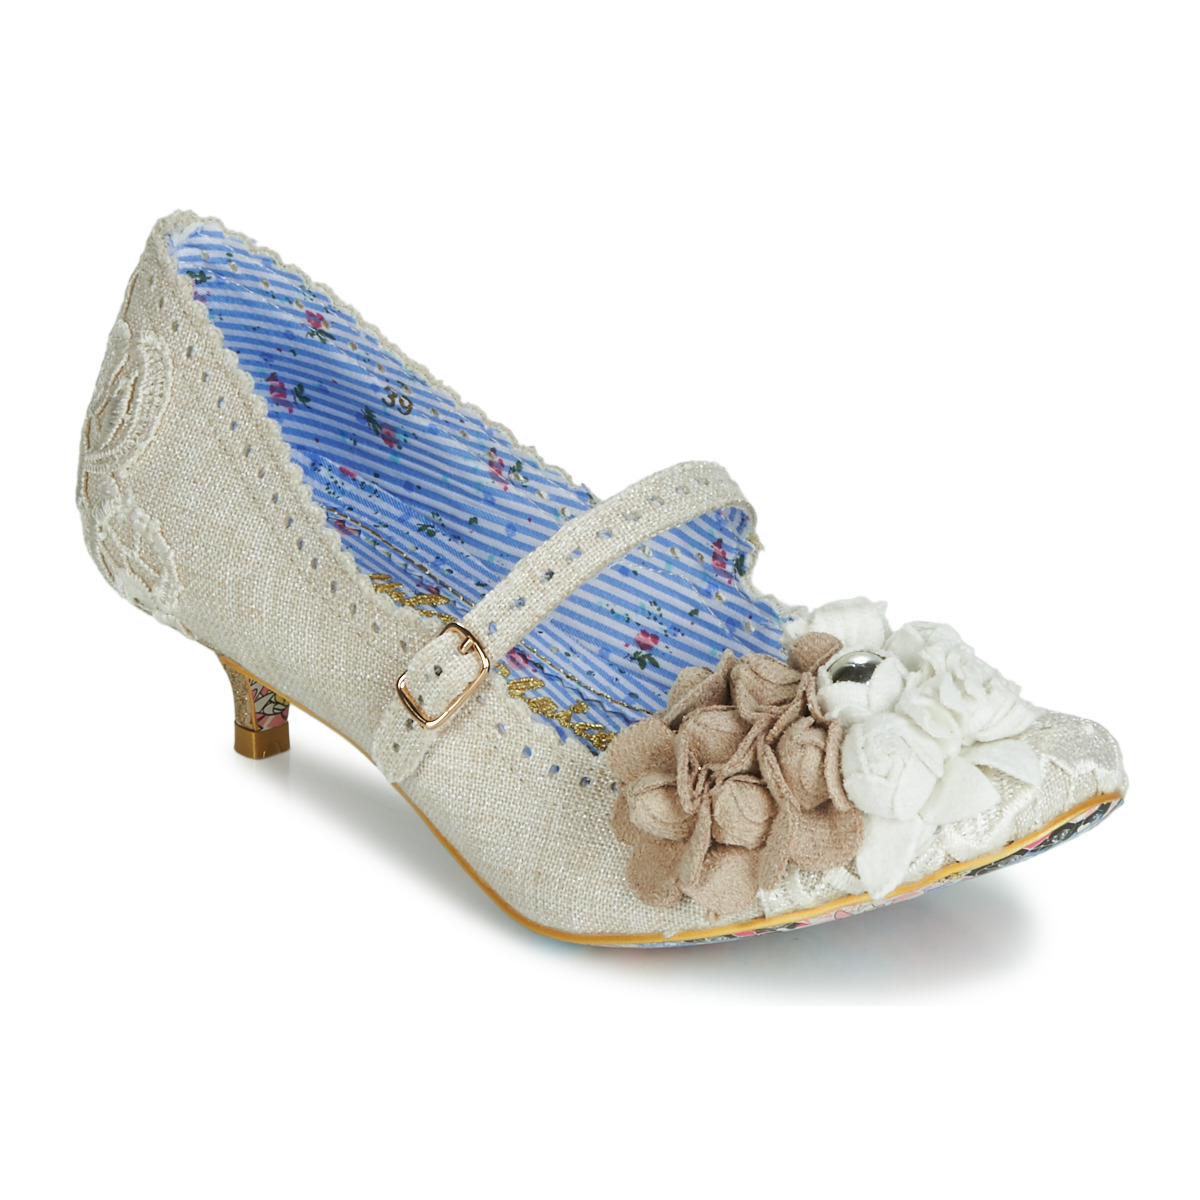 Escarpins Irregular Choice DAISY DAYZ Beige / Multicolor